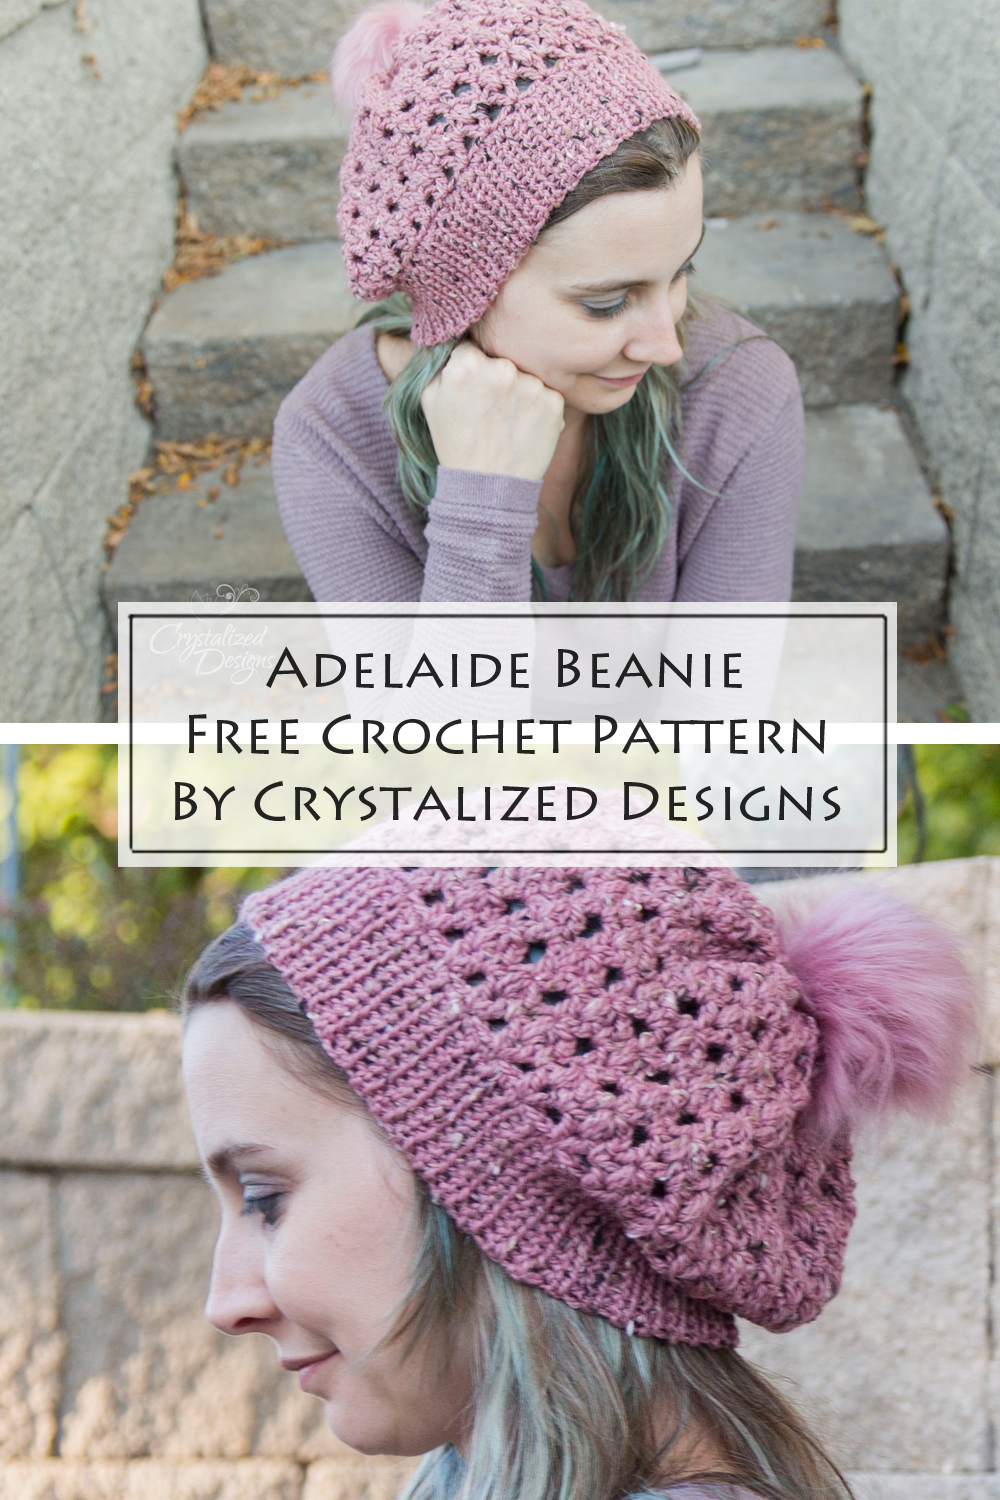 Adelaide Beanie Free Crochet Pattern by Crystalized Designs